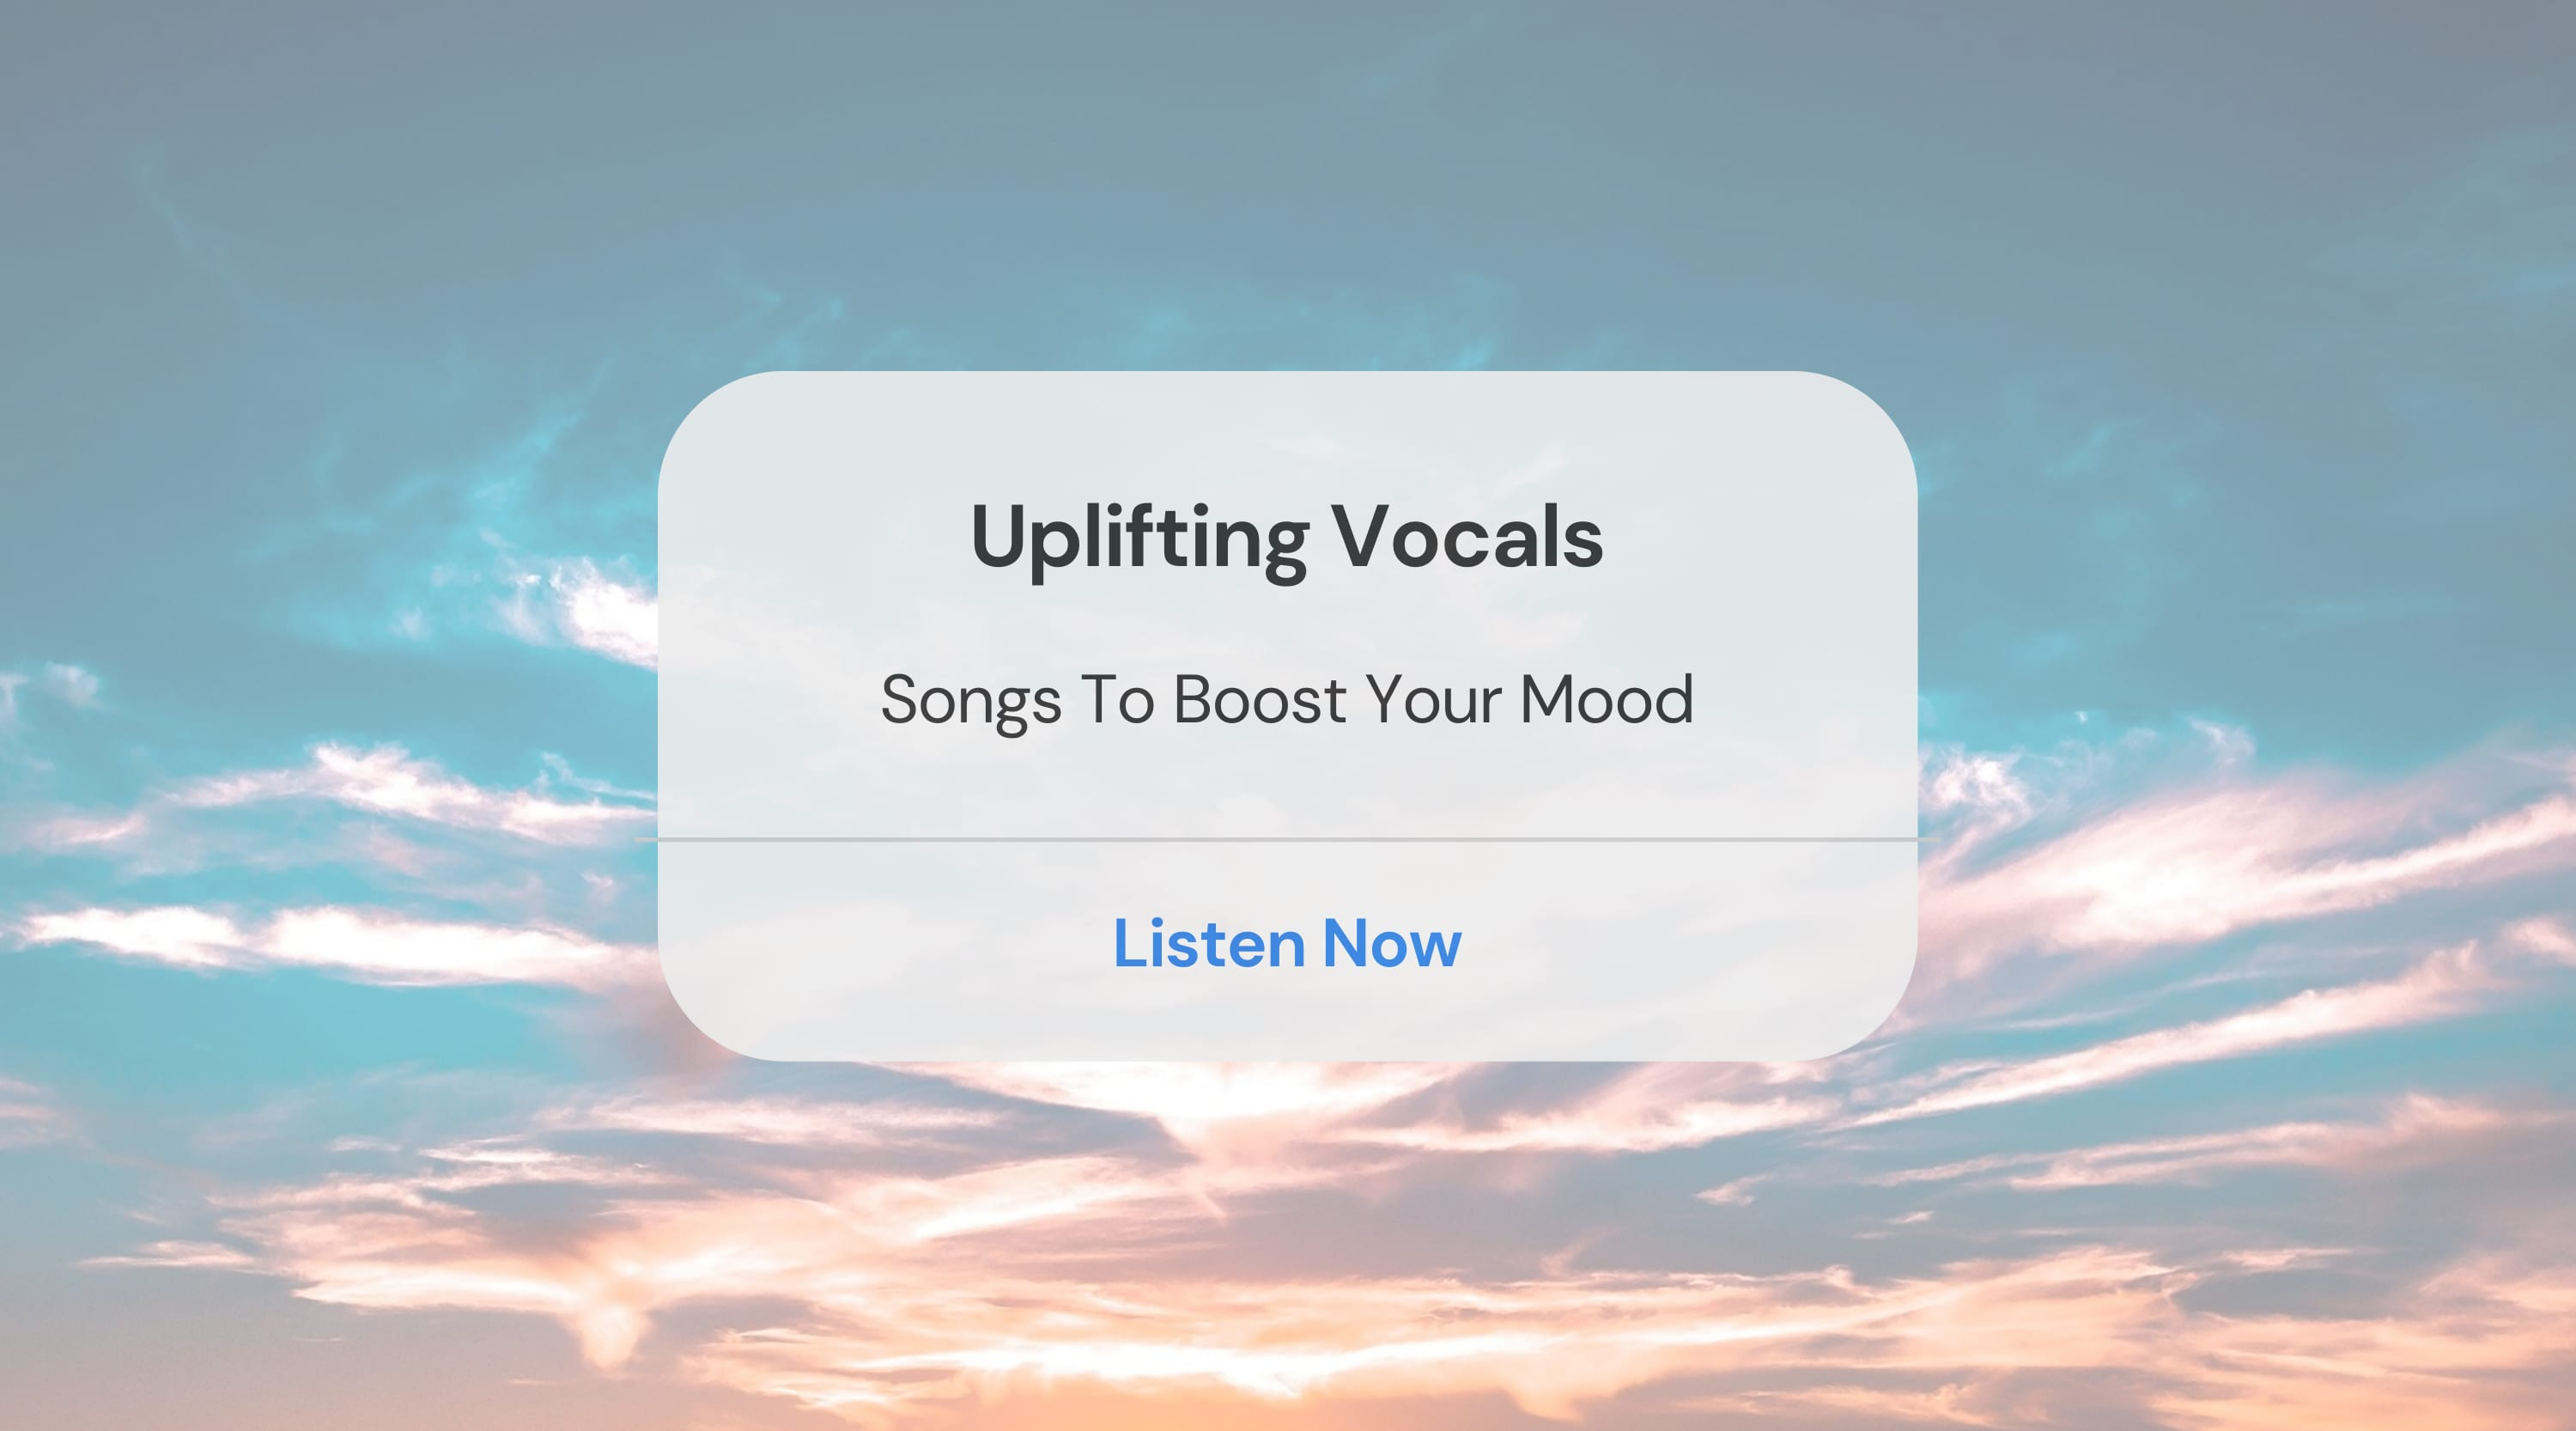 Uplifting Vocals - Songs To Boost Your Mood